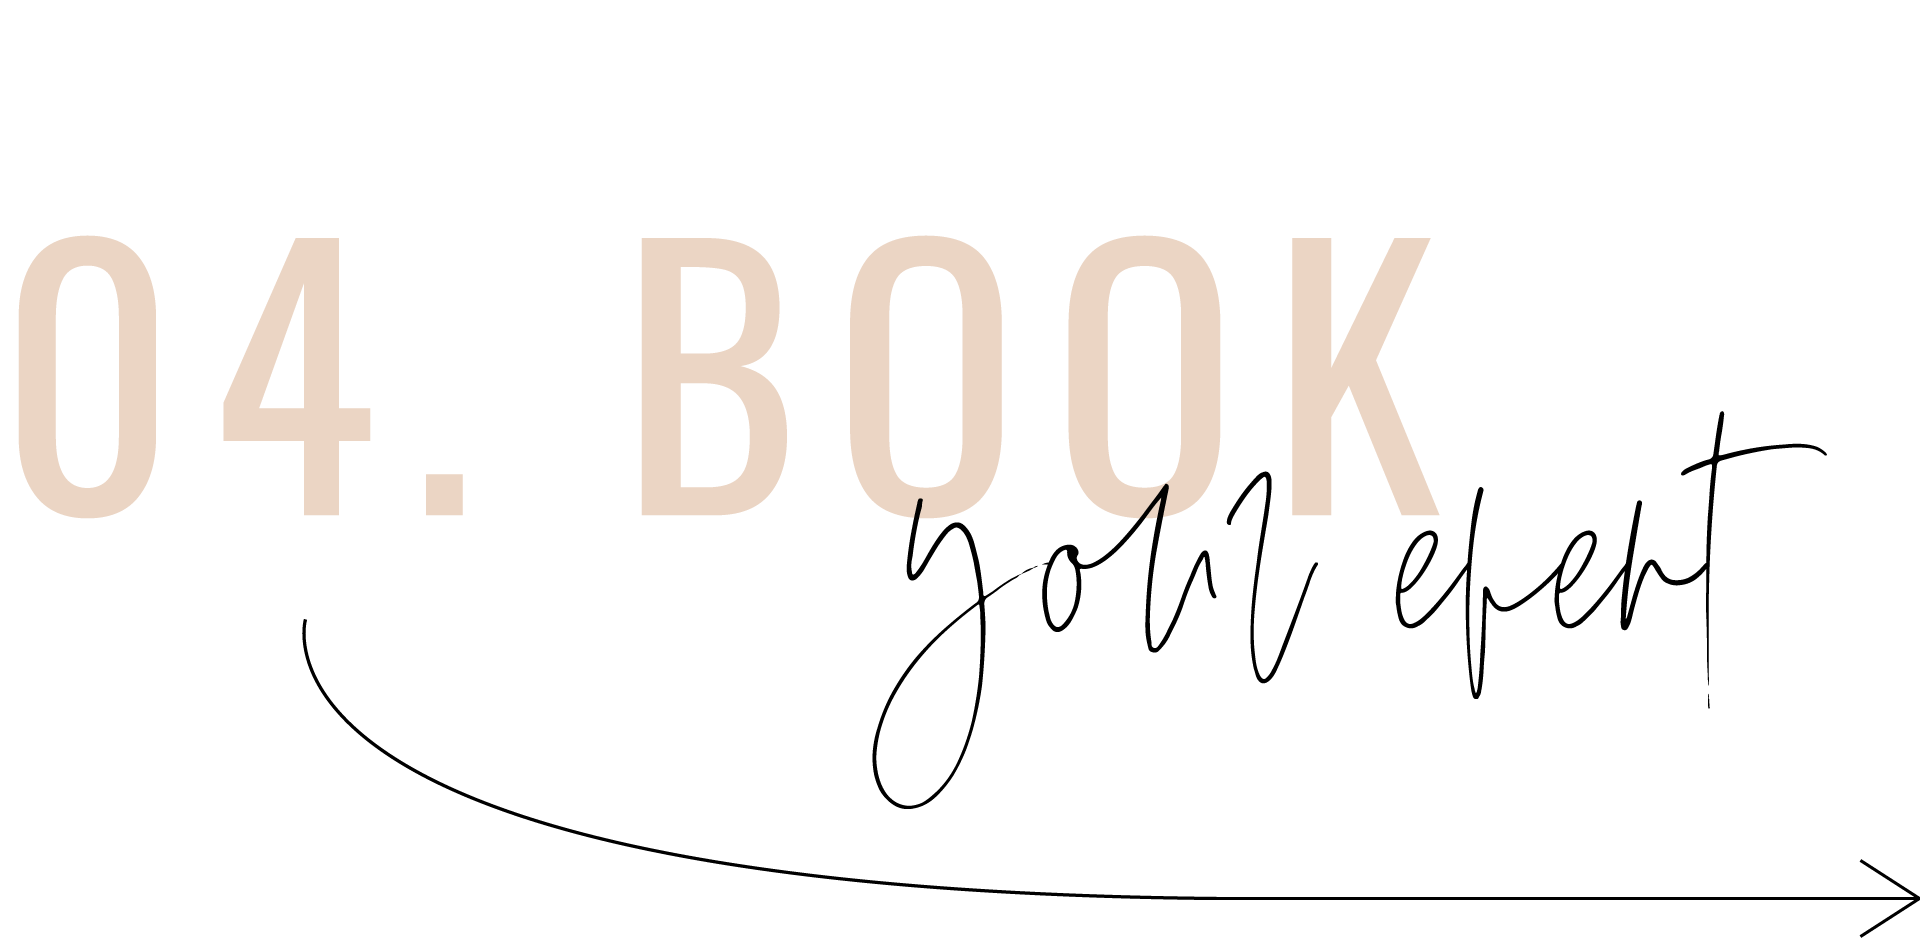 04BookEvent.png